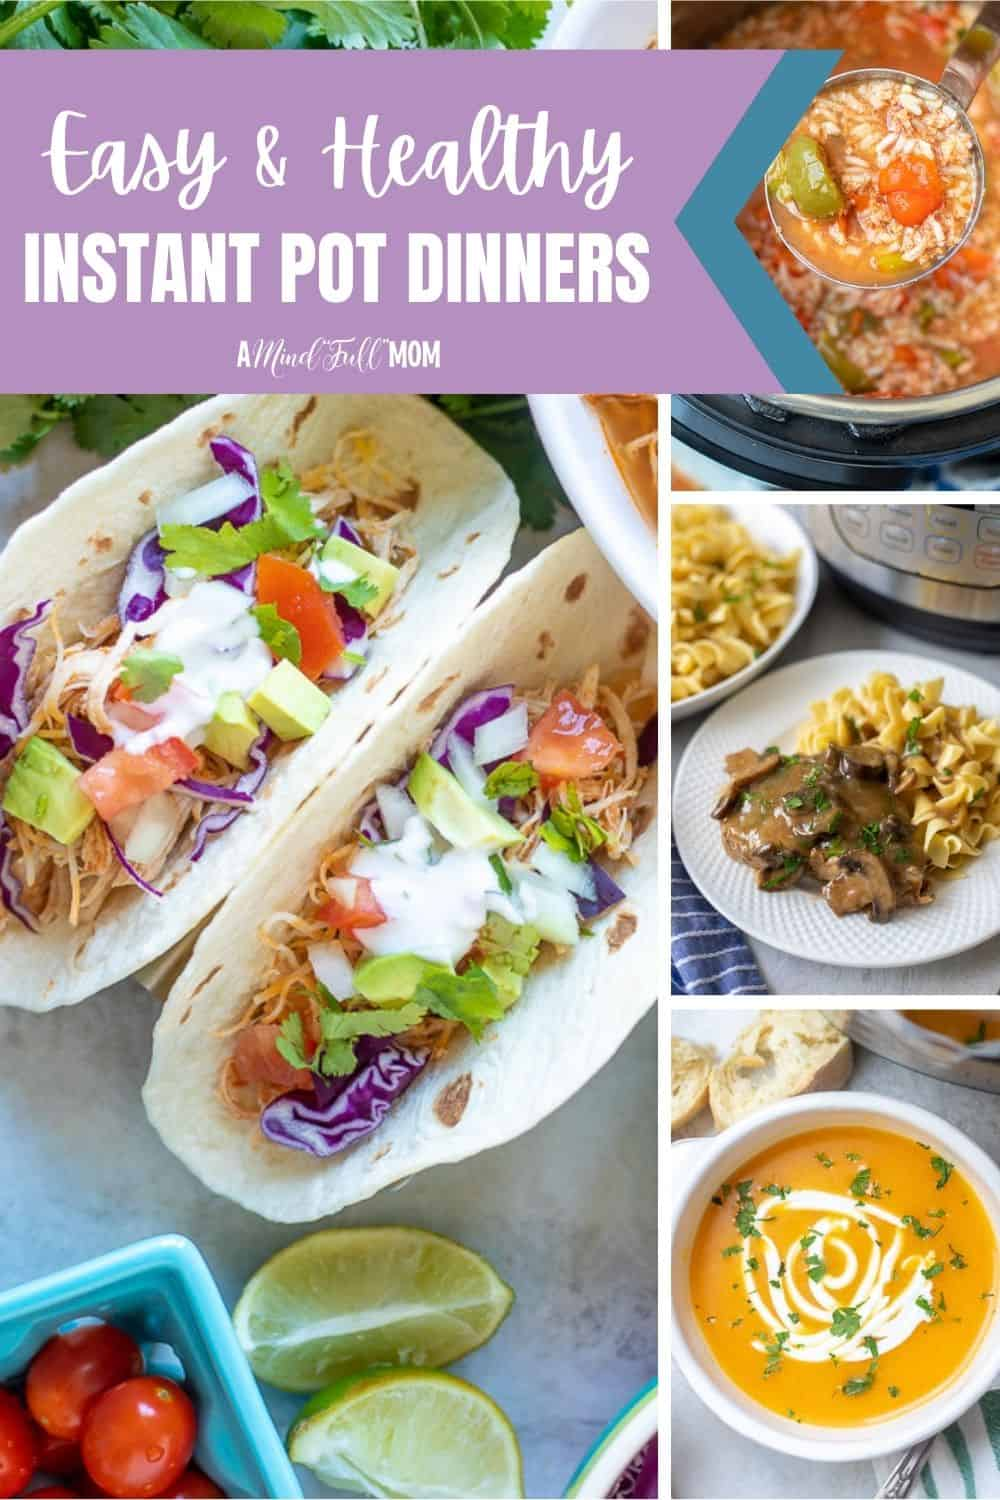 If you are looking for the BEST Instant Pot recipes--this is for you! Make dinner fast and healthy with these Instant Pot recipes. This is a collection of 20 healthy Instant Pot recipes that are perfect for a fast, yet wholesome dinner.